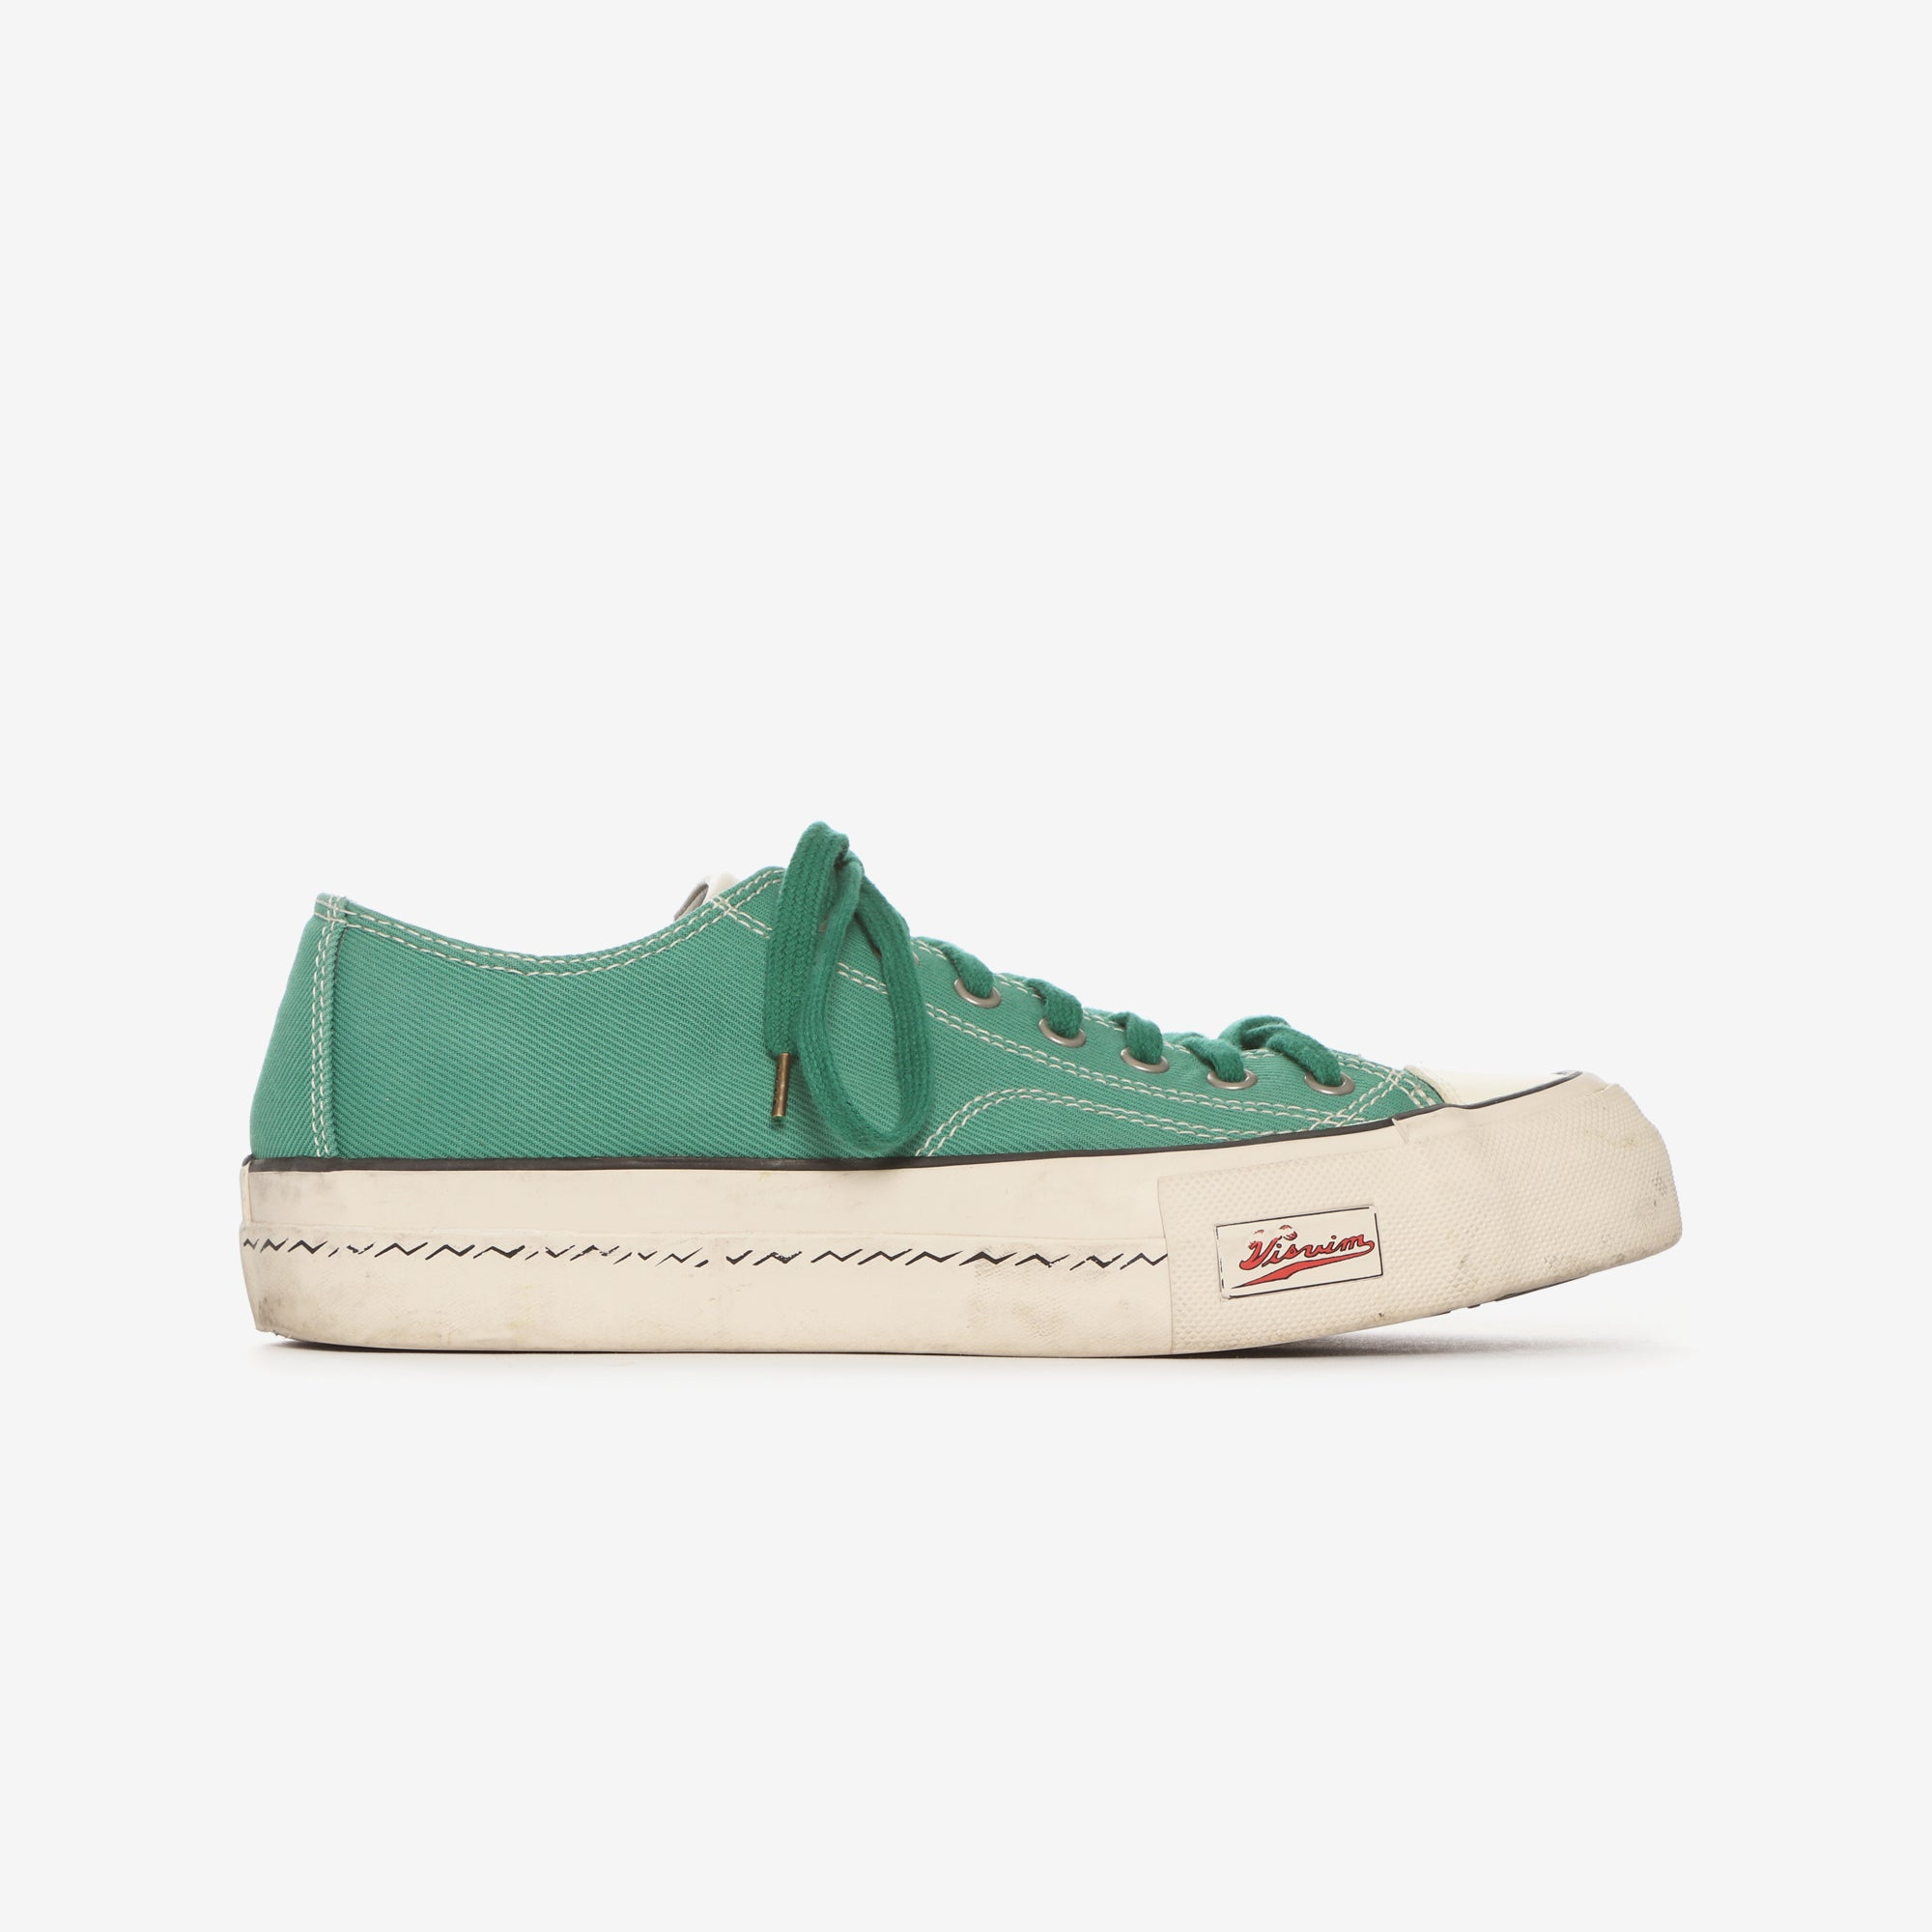 Skagway Low Canvas Sneakers